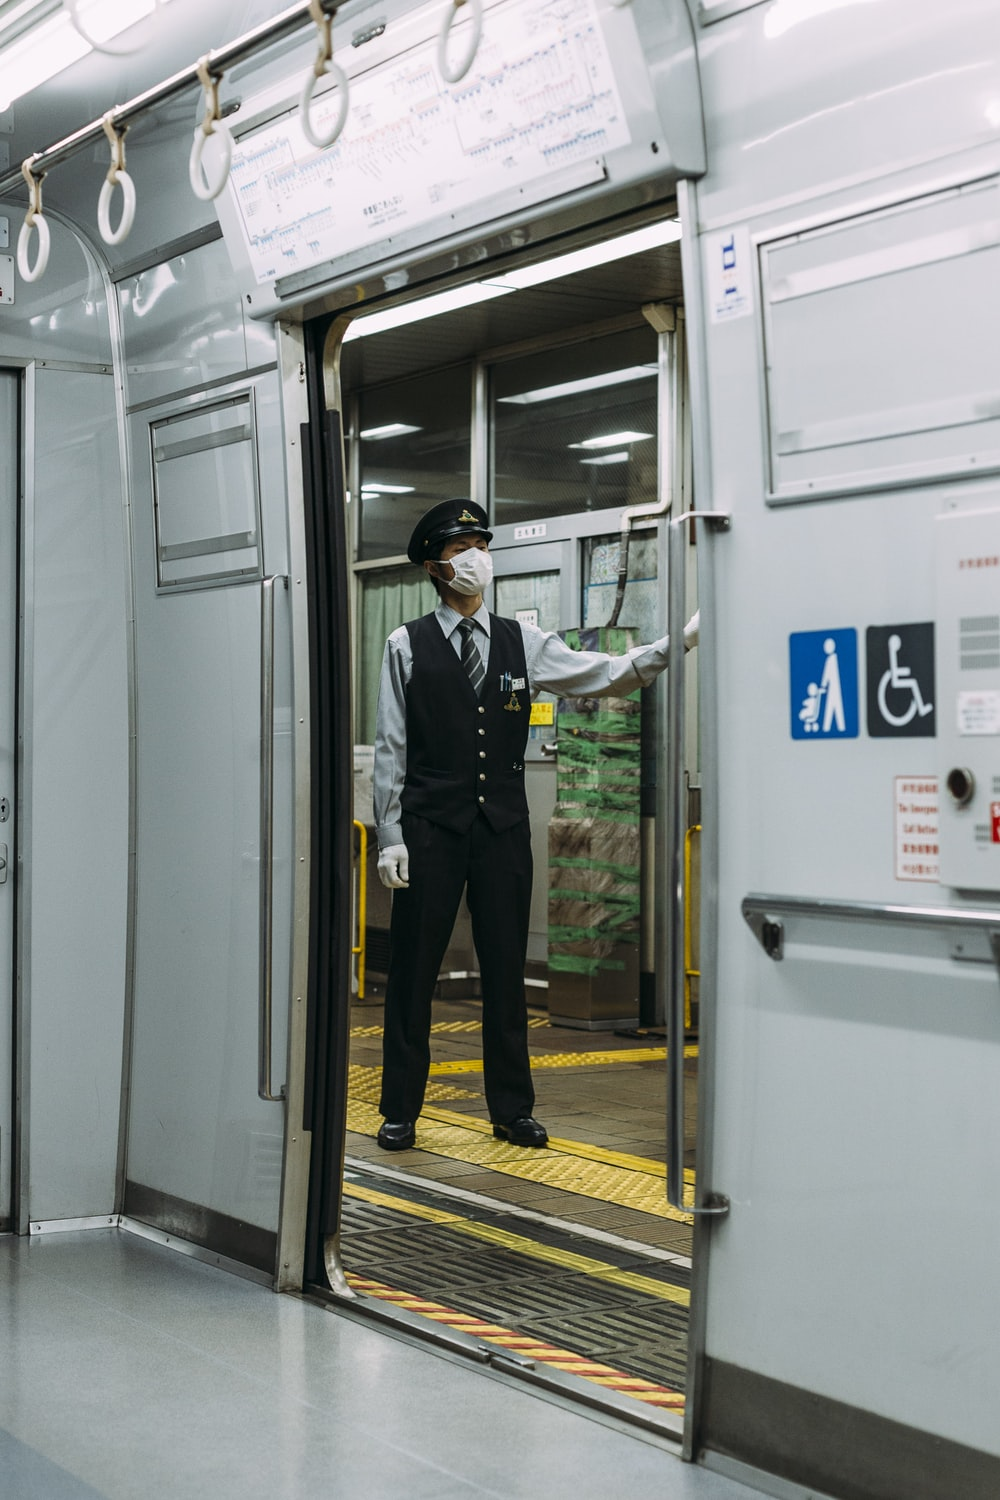 male guard in black and white dress standing infront of train station